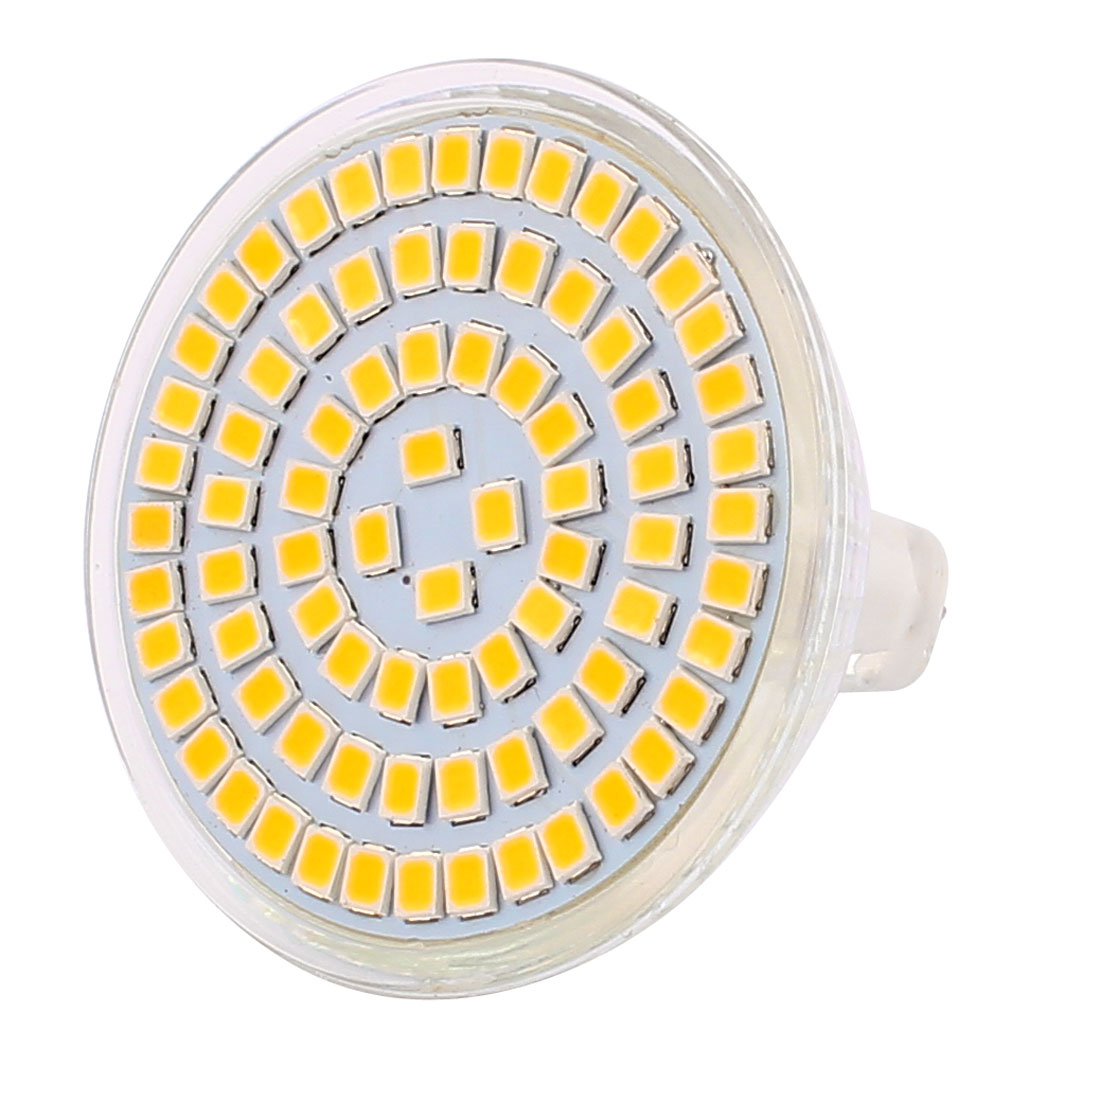 110V 8W MR16 2835 SMD 80 LEDs LED Light Spotlight Down Lamp Lighting Warm White